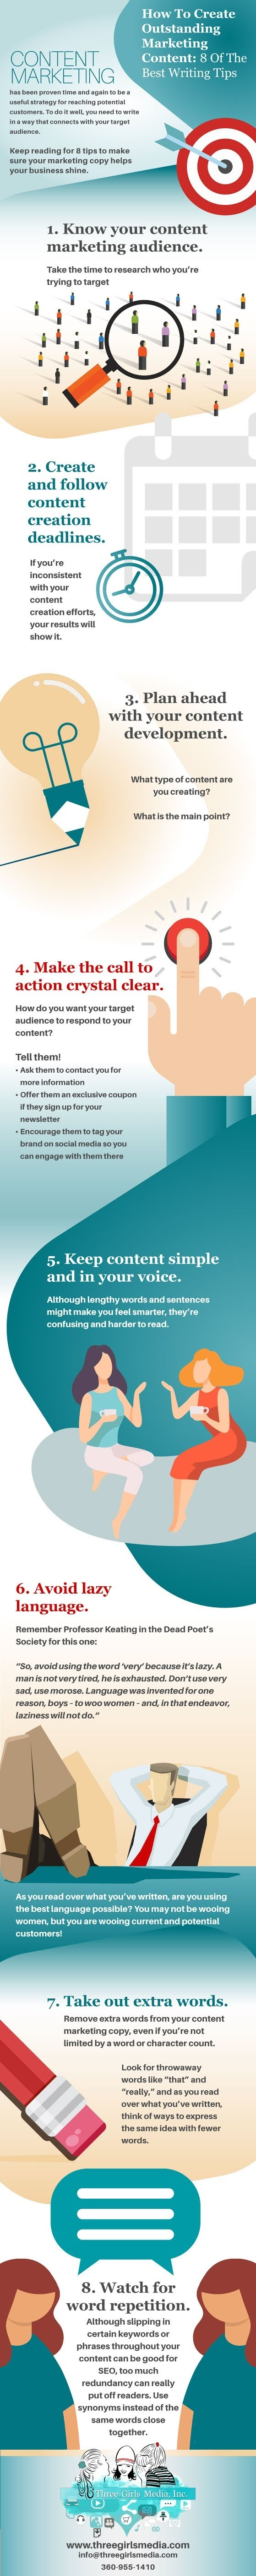 8 Top Writing Tips You Need To Know For Successful Content Marketing #infographic